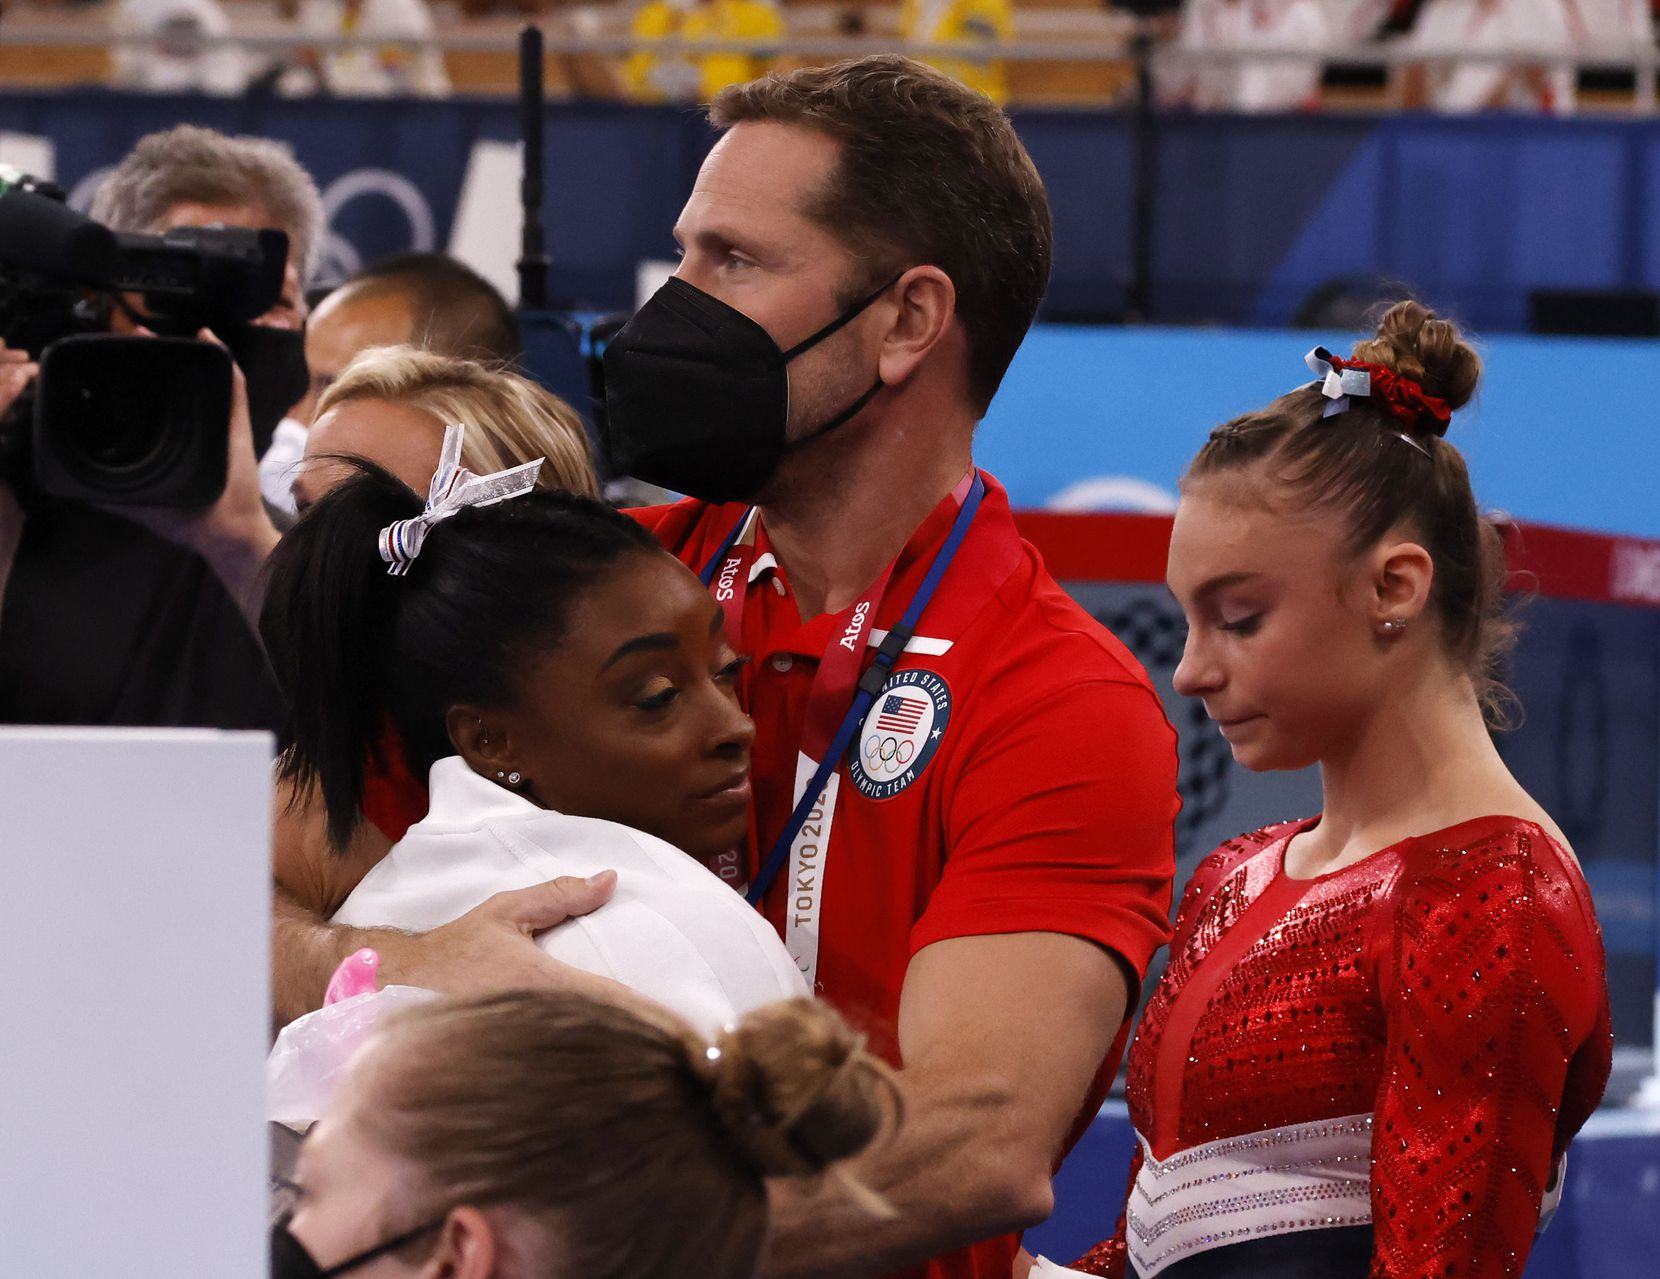 USA's Simone Biles hugs coach Laurent Landi after returning to the field of play shortly after competing in the vault during the artistic gymnastics women's team final at the postponed 2020 Tokyo Olympics at the Ariake Gymnastics Centre on Tuesday, July 27, 2021, in Tokyo, Japan. Biles was pulled from competition after the vault.